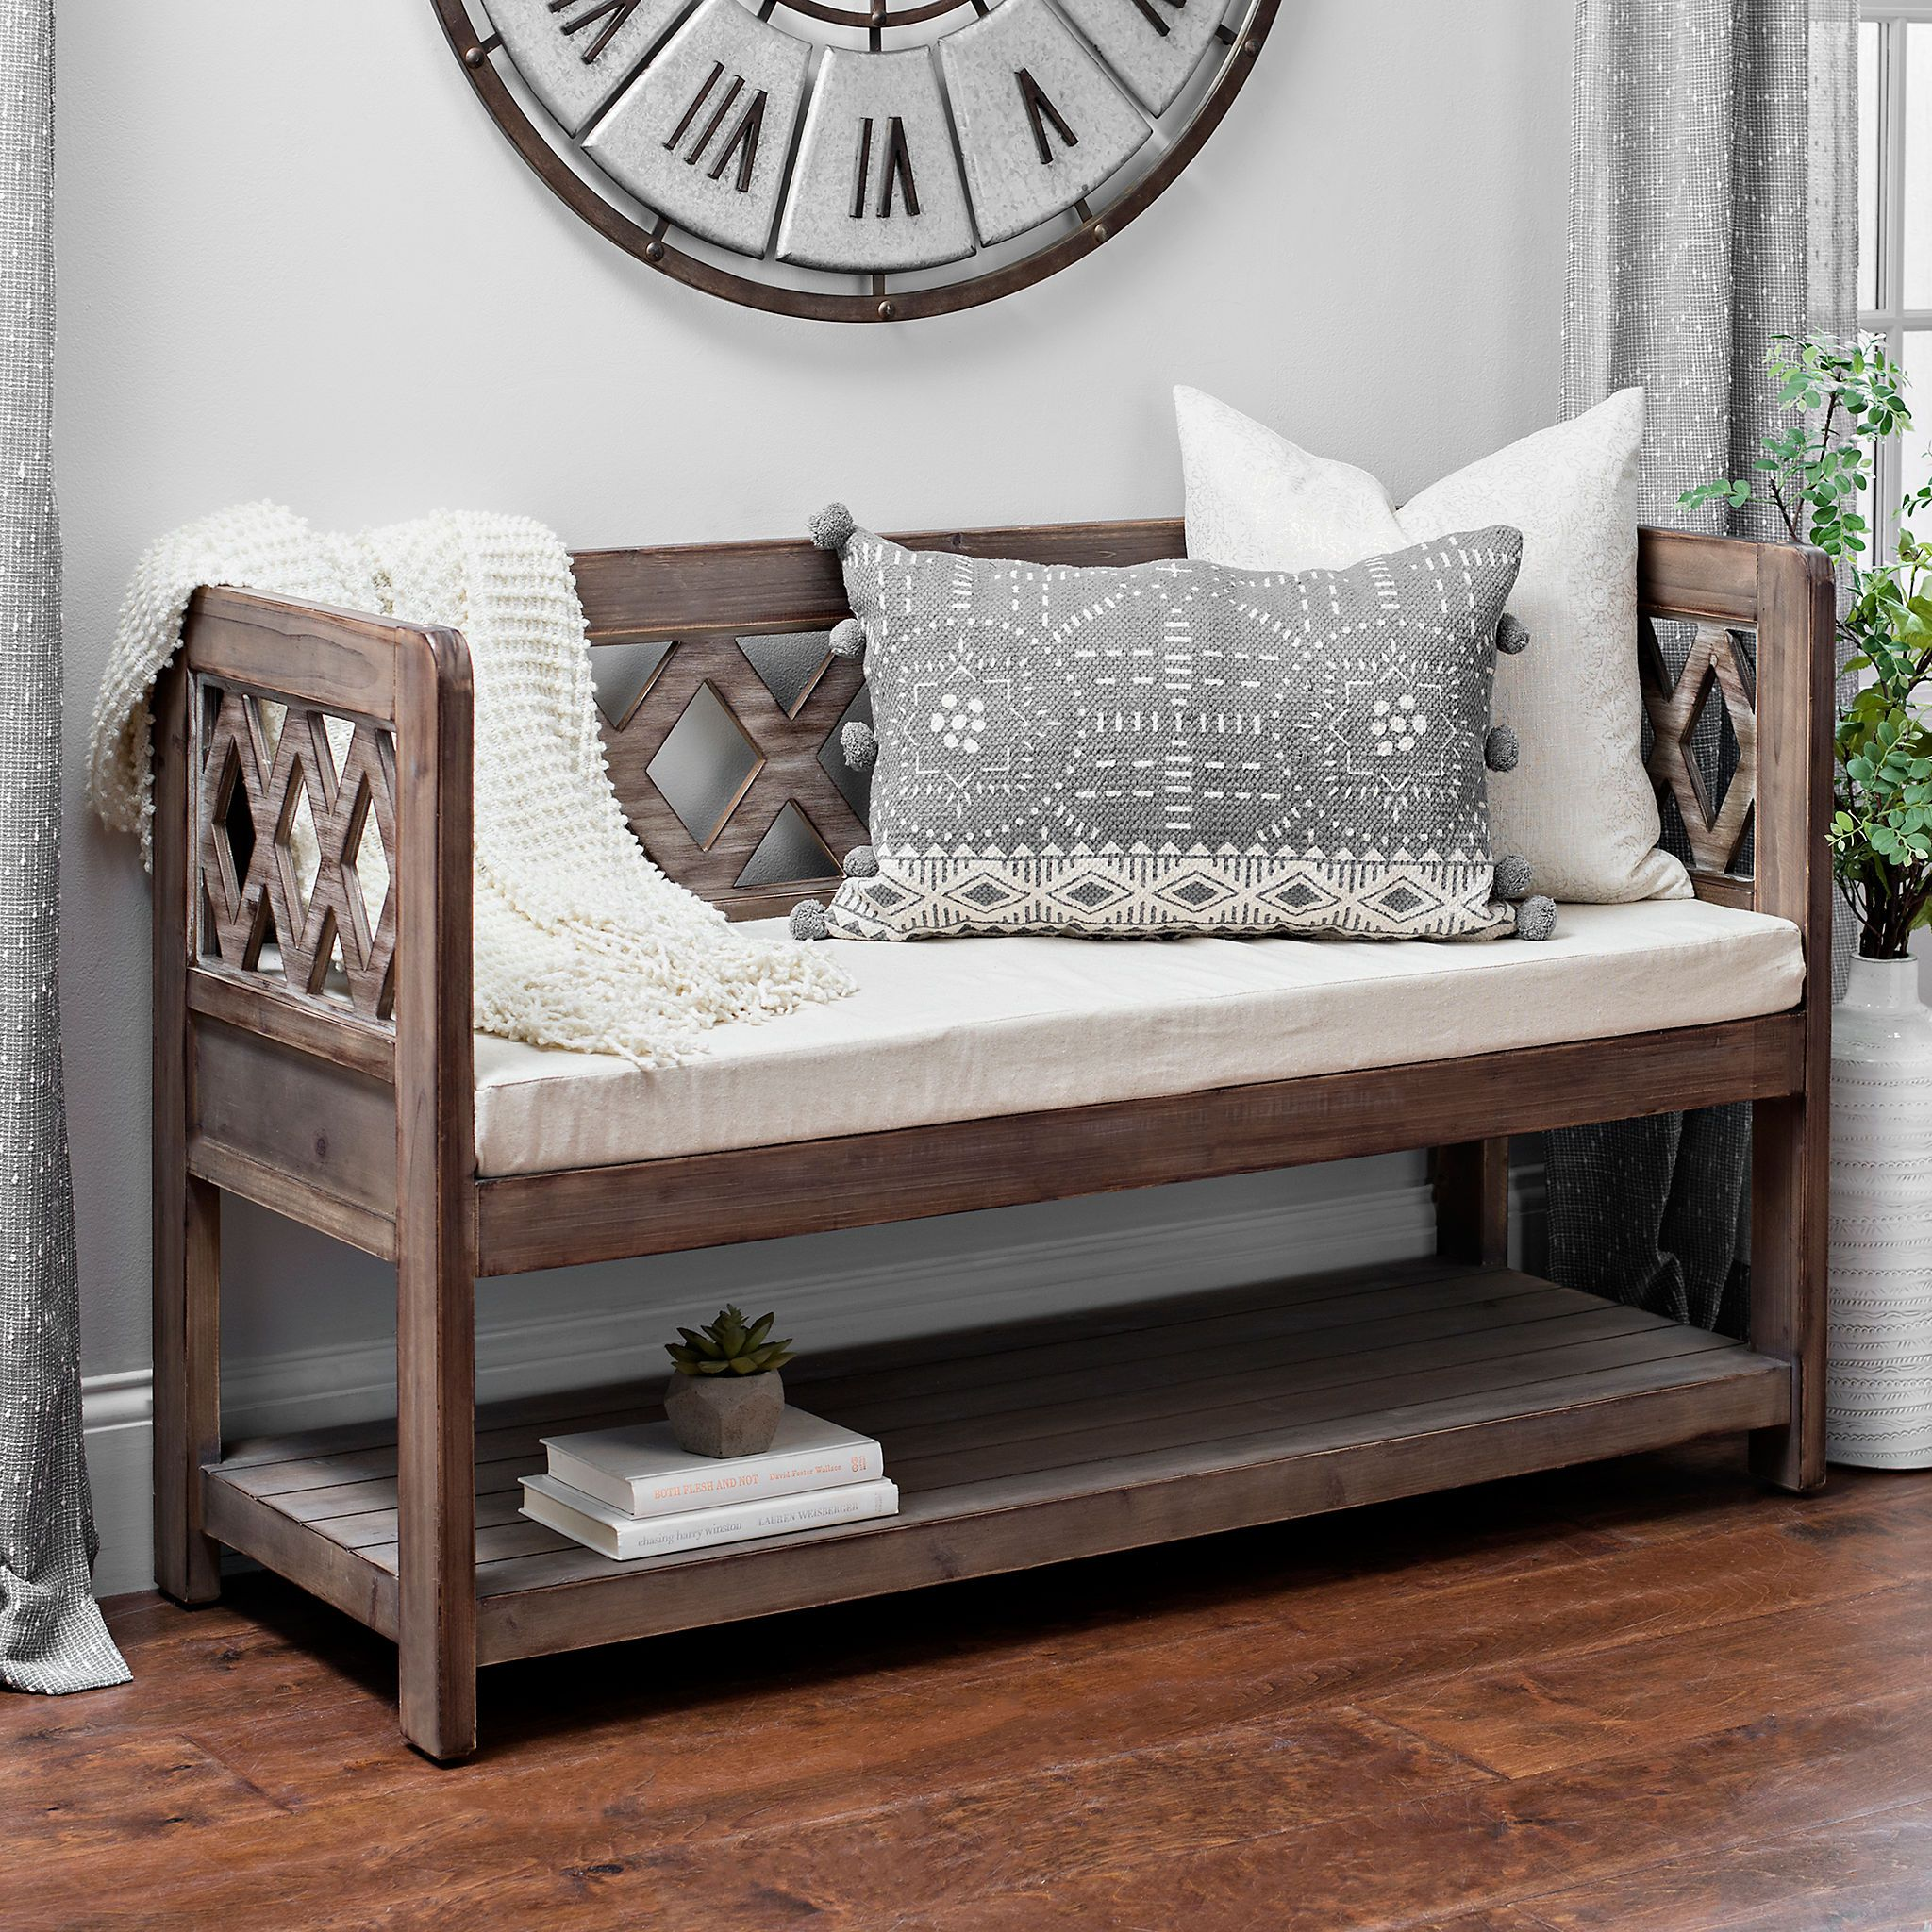 Tremendous Product Details Diamond Natural Wood Bench House Items Ncnpc Chair Design For Home Ncnpcorg